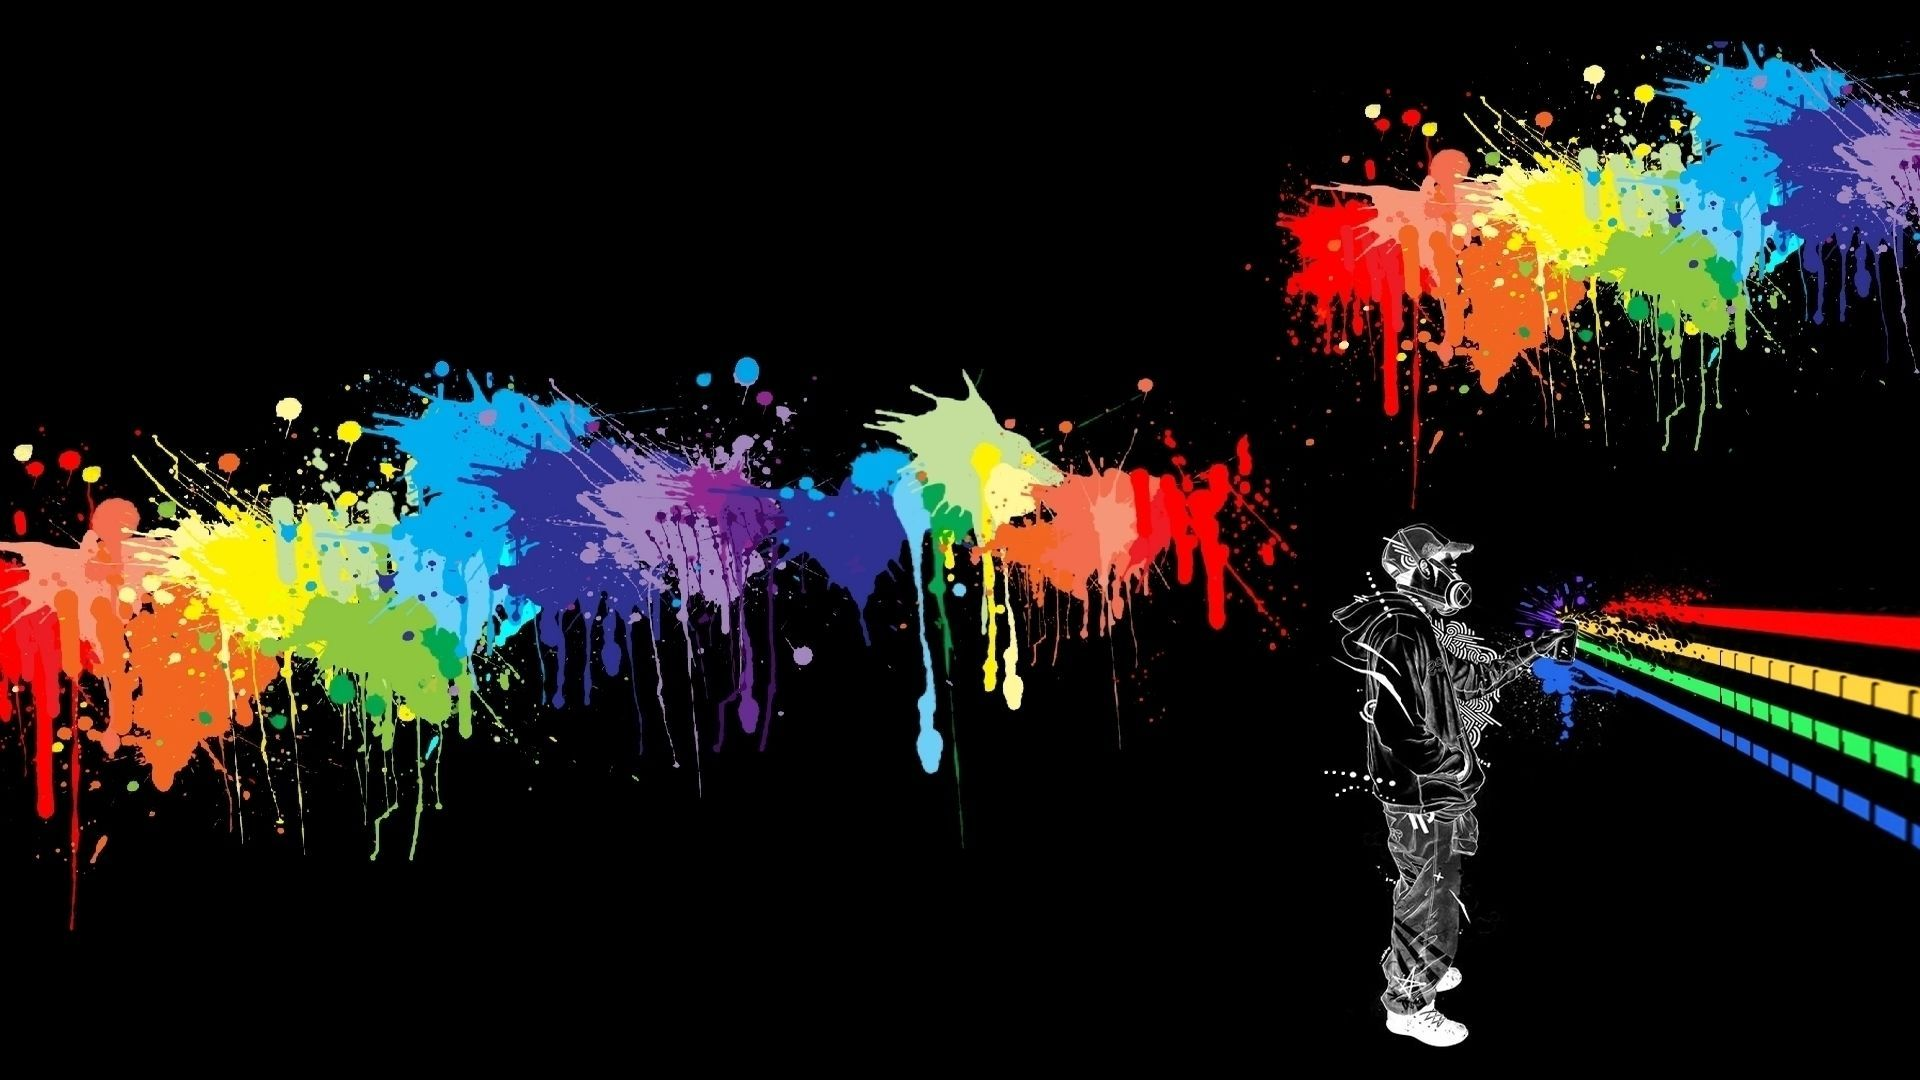 Cool Graffiti Art Desktop Background Hd 1920x1080 Deskbgcom Art